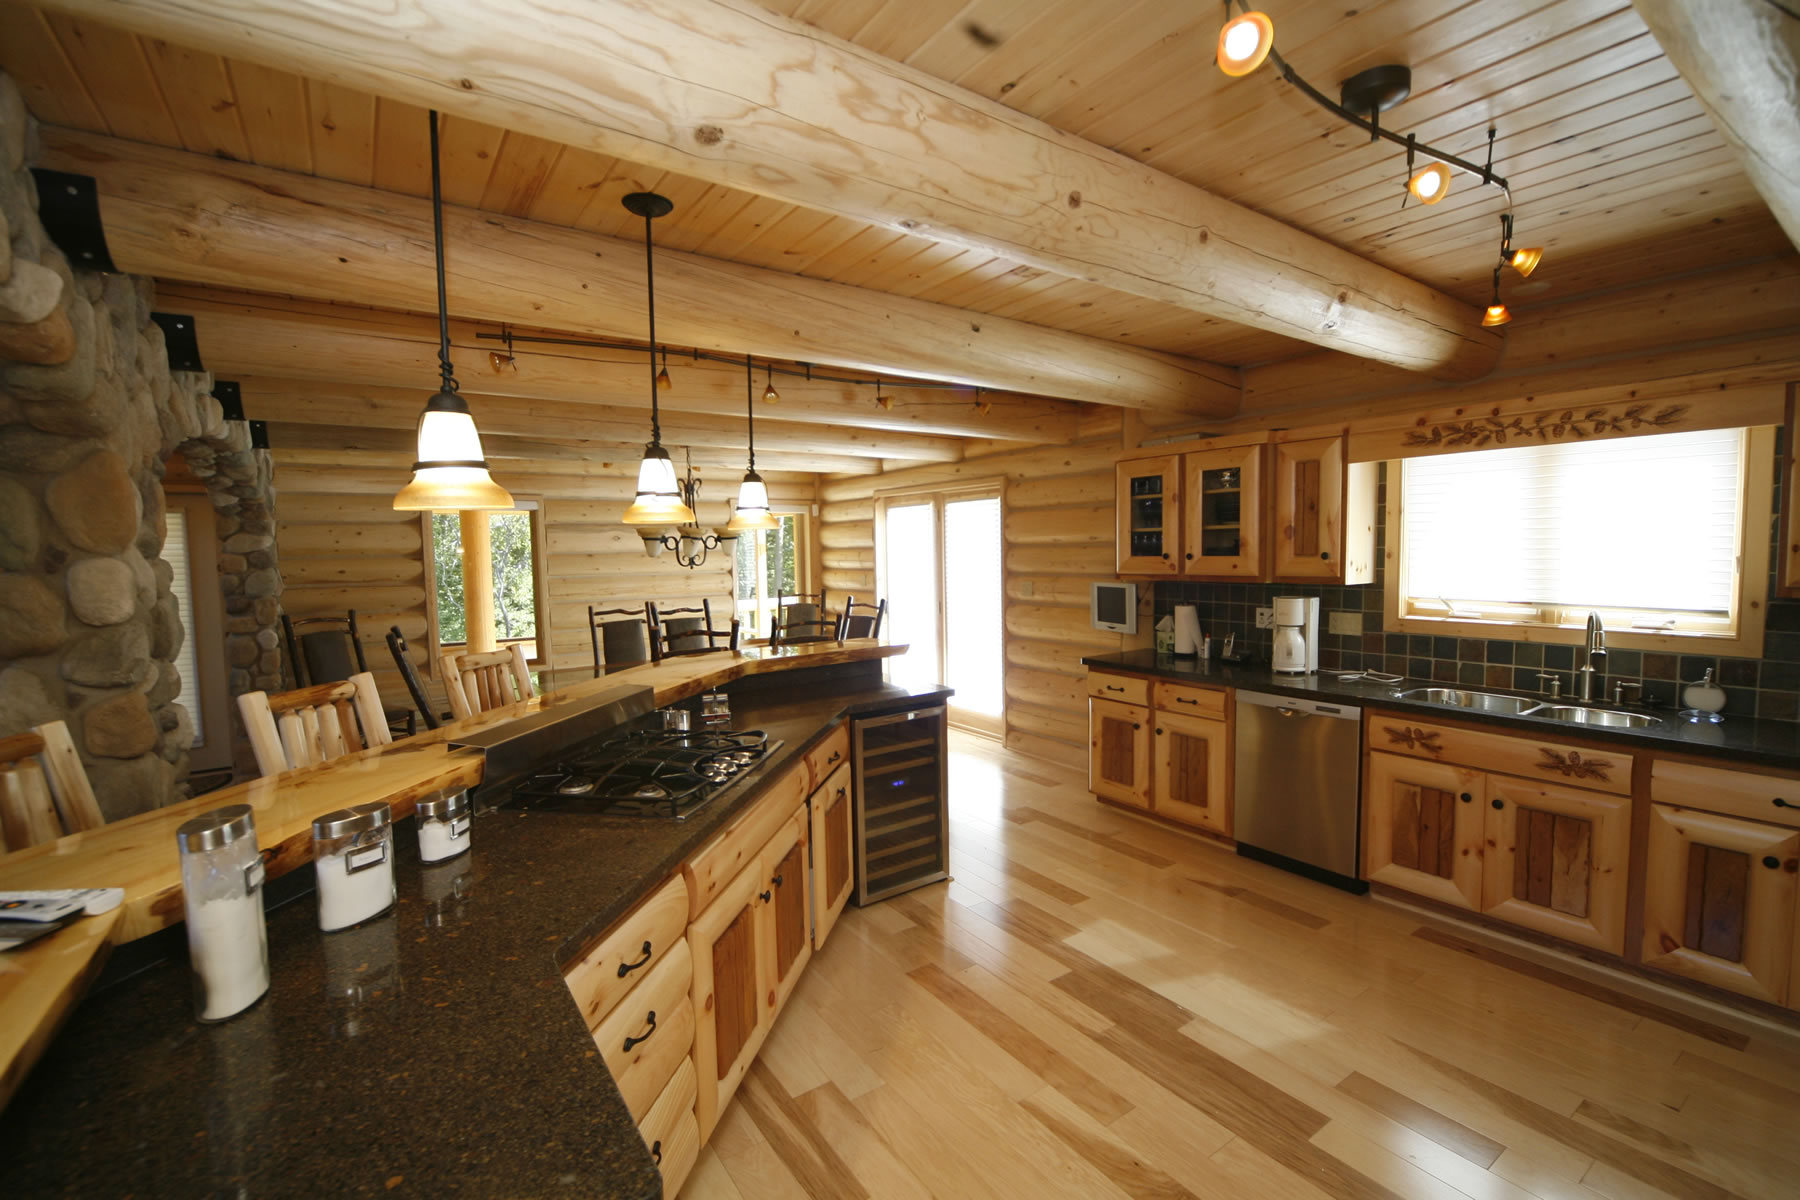 Whisper Creek Log Homes Oke Woodsmith Building Systems Inc Home Wiring